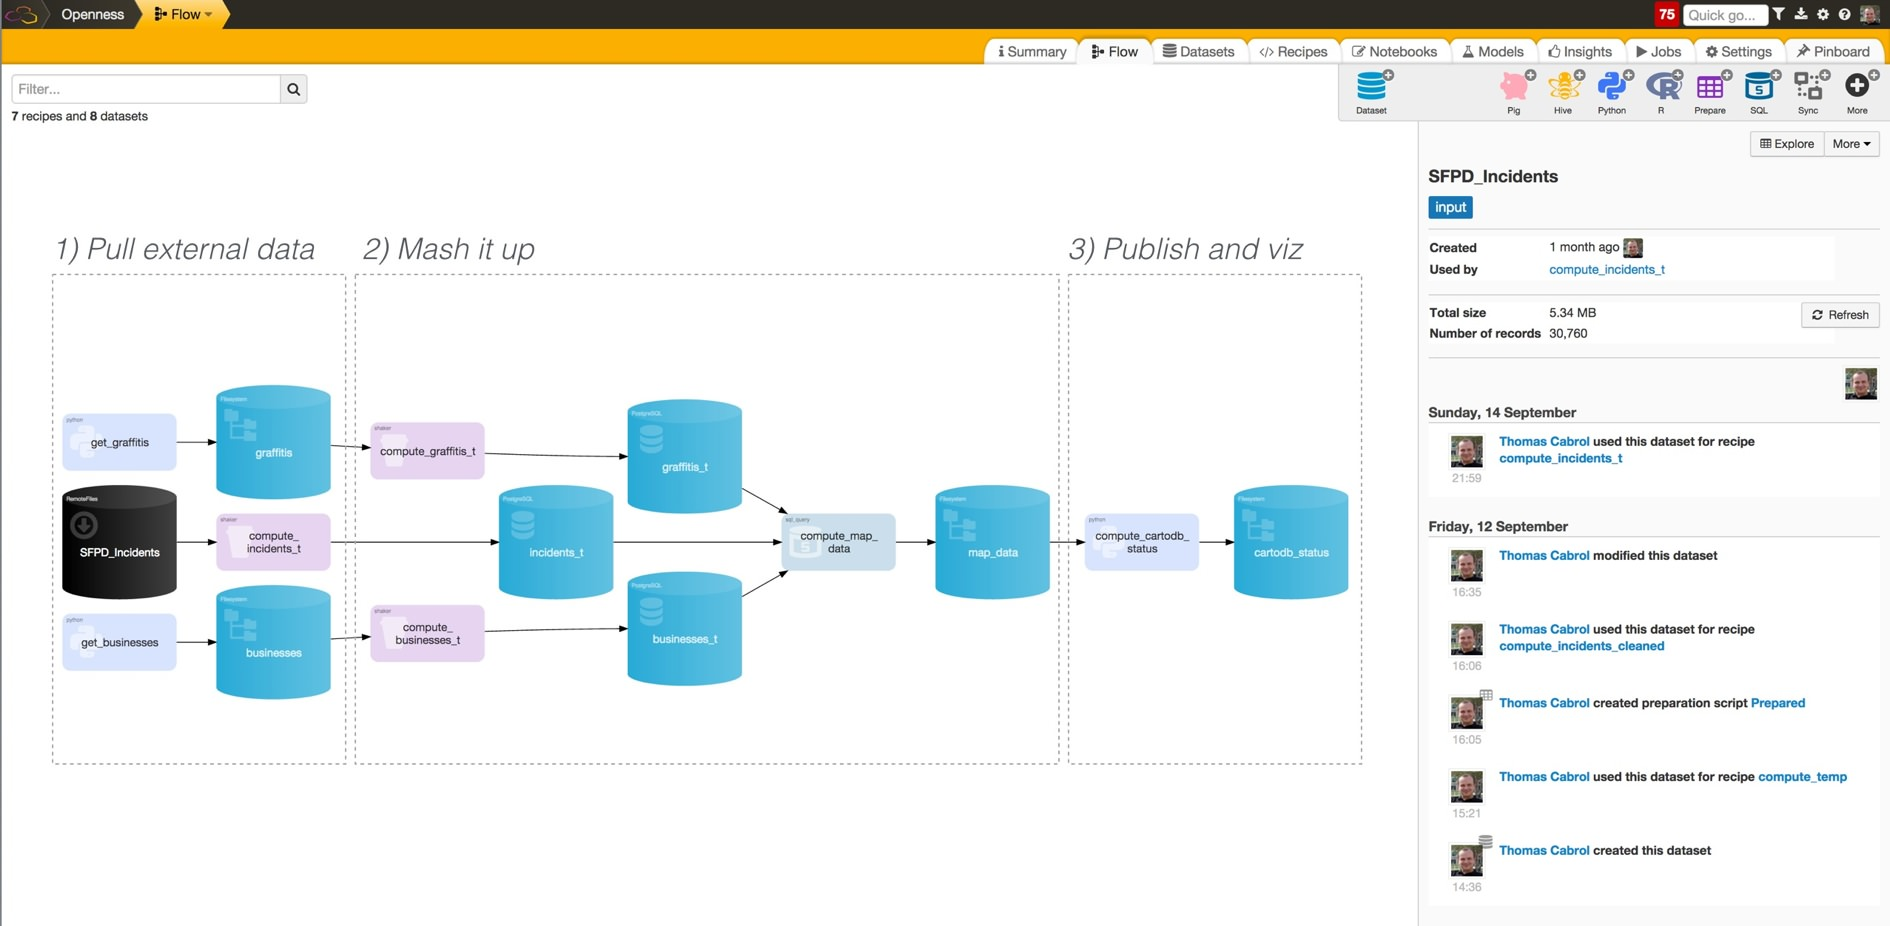 Working with External Data and APIs in Data Science Studio